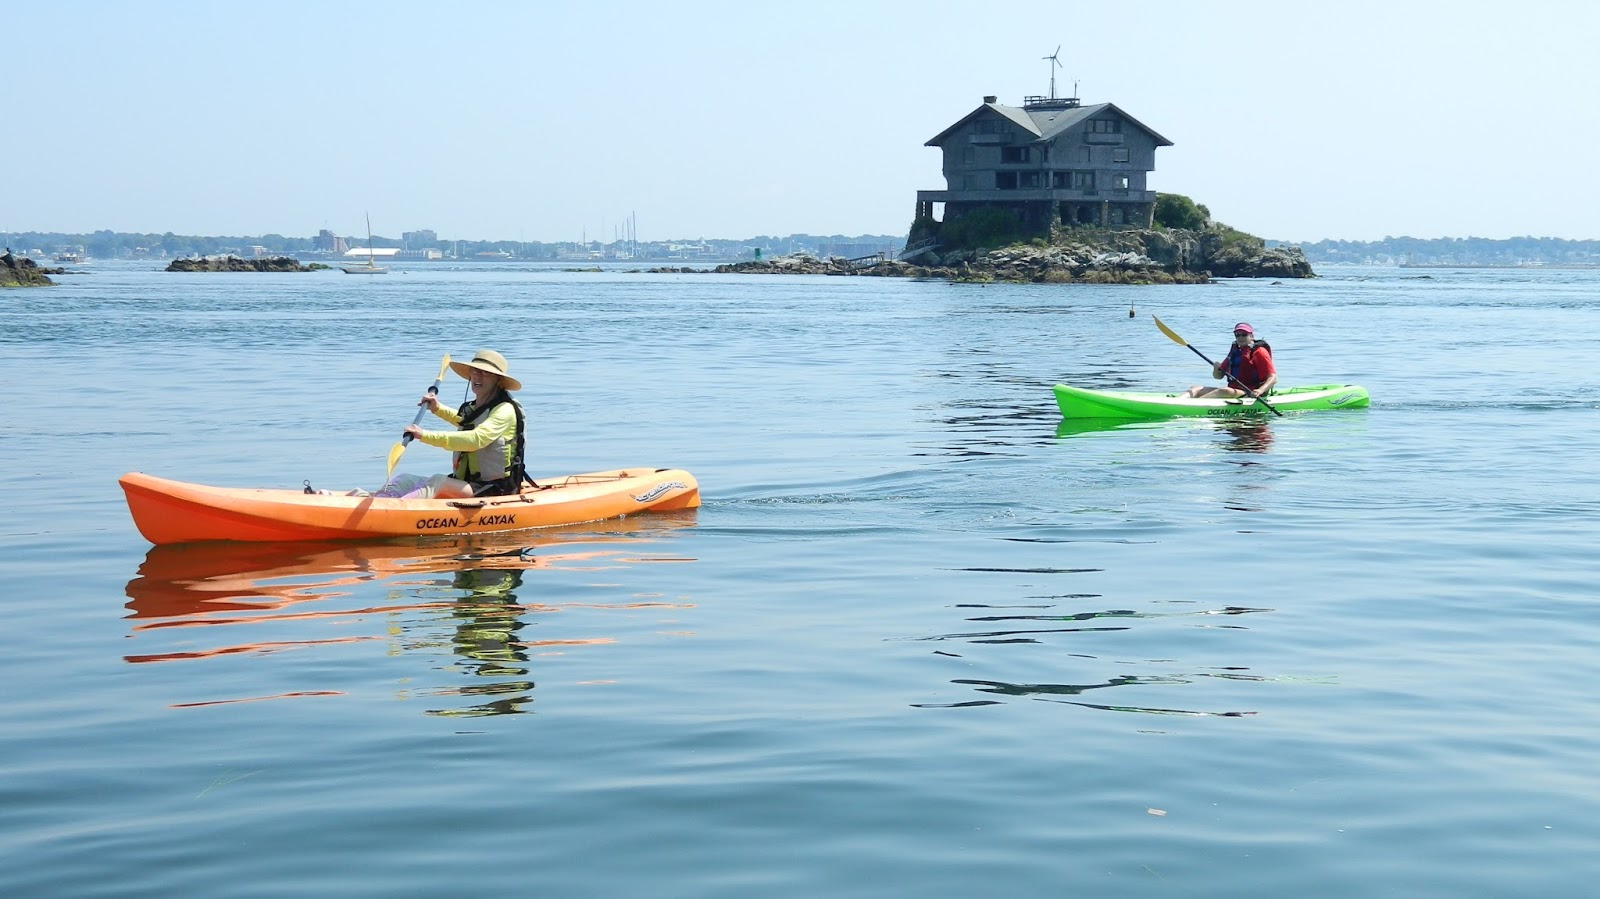 as you can see the water was beautifully calm nice for motor boats and kayaks but not so sweet for sail boats these guys were getting towed out to where - Clingstone Narragansett Bay